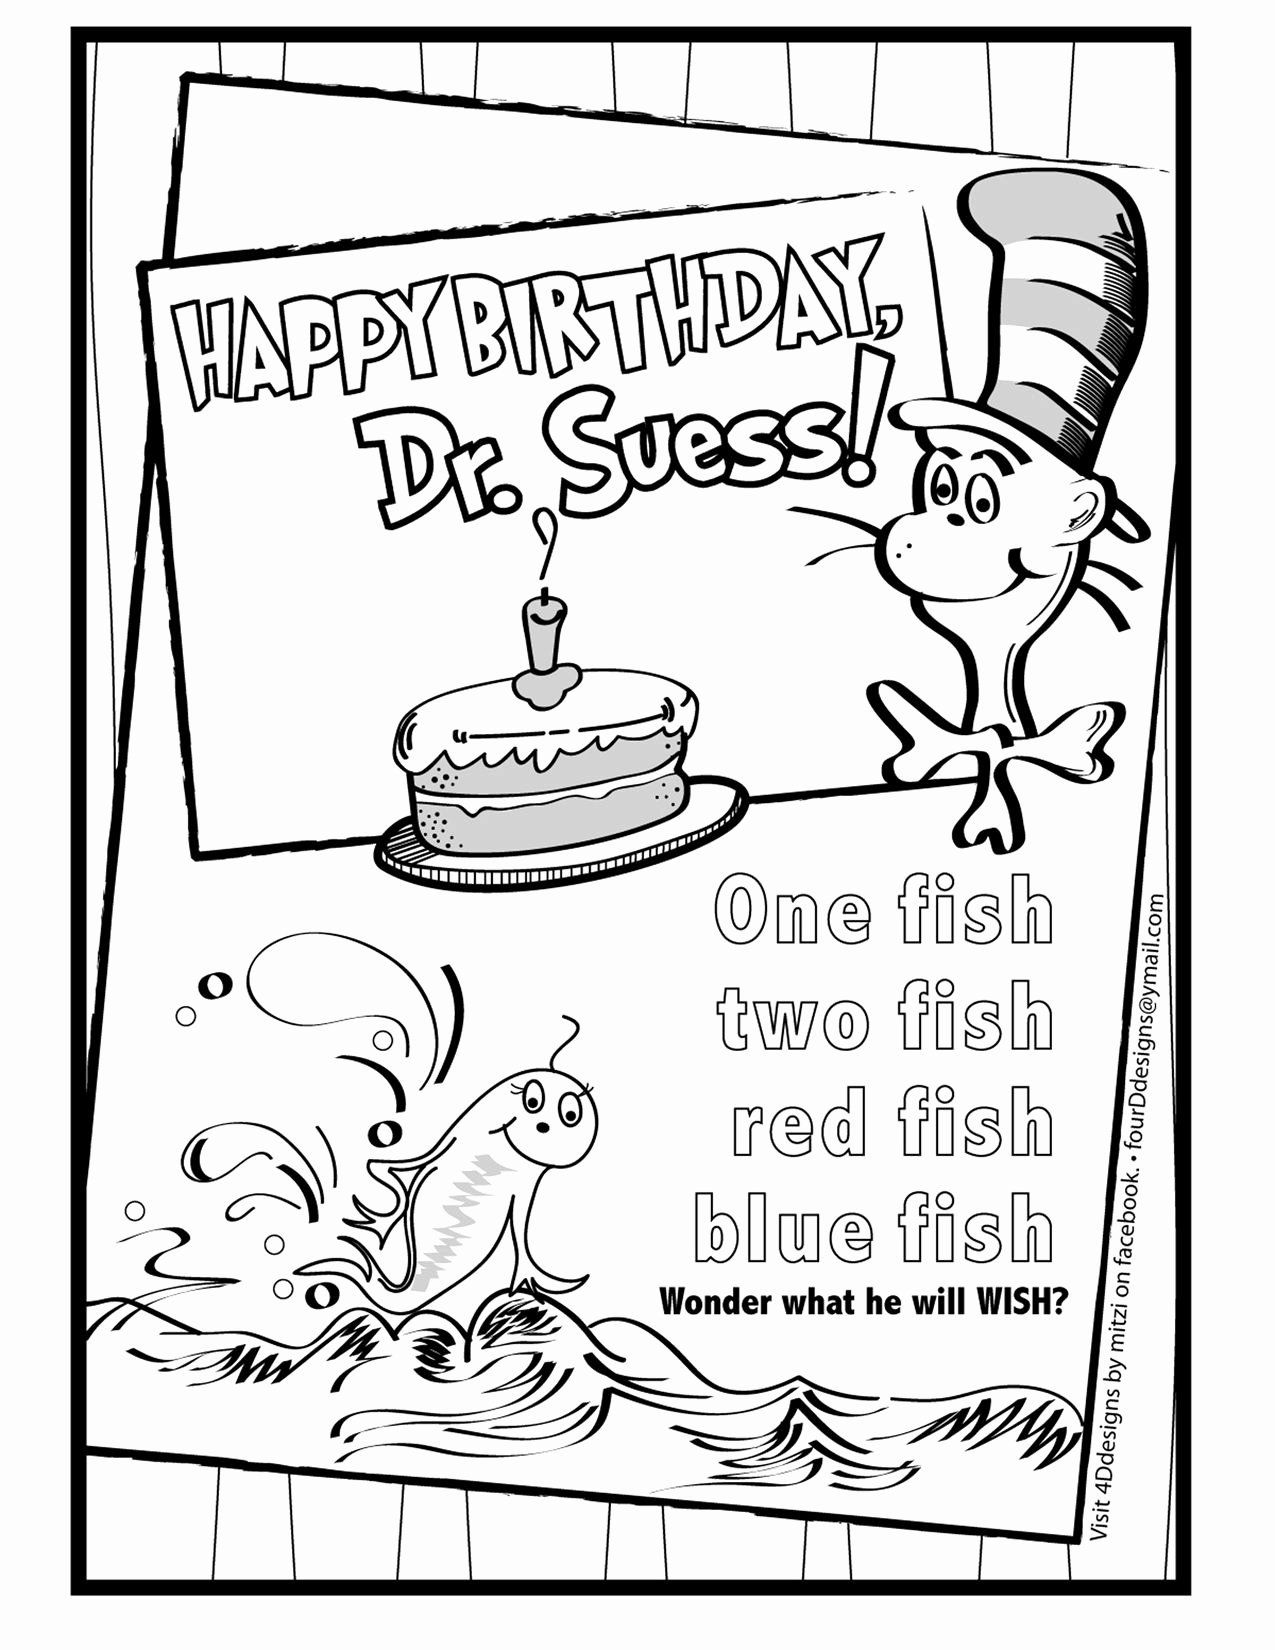 24 Dr Seuss Coloring Pages Printable Djmatioca Com In 2020 Dr Seuss Coloring Pages Dr Seuss Coloring Sheet Birthday Coloring Pages